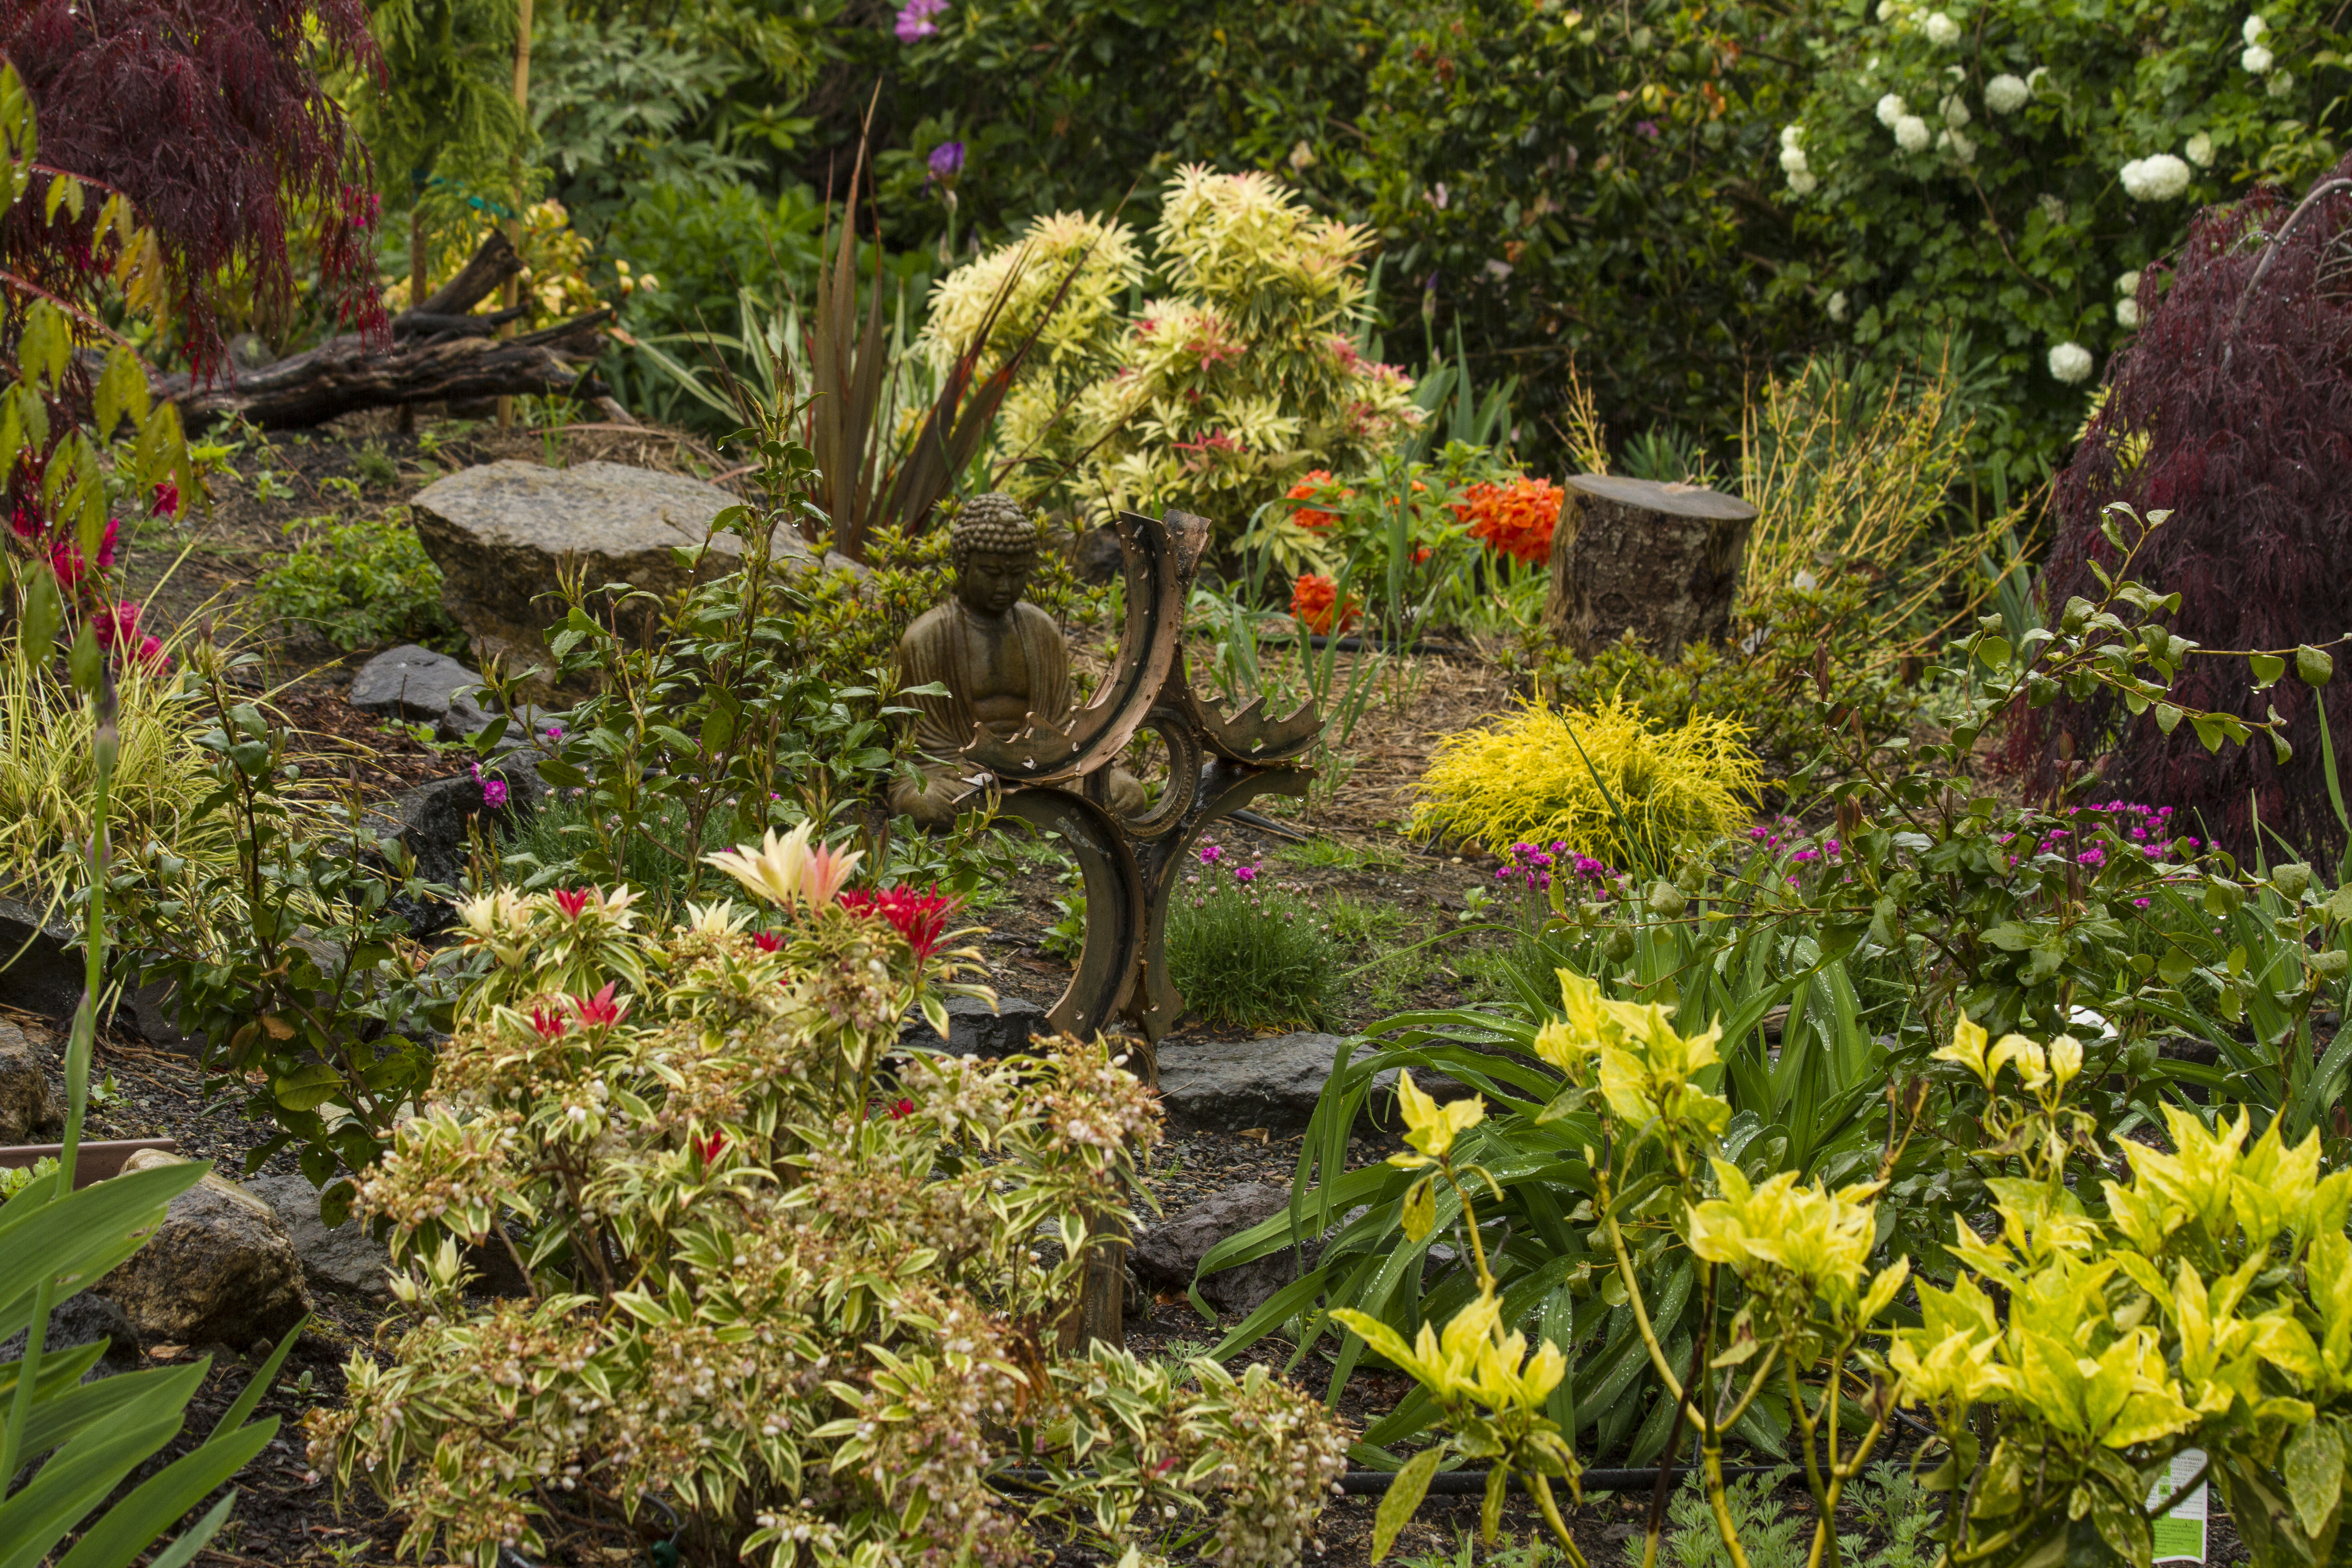 Rain Garden for a Rainy Day – The New 3 Rs: Retire, Recharge, Reconnect